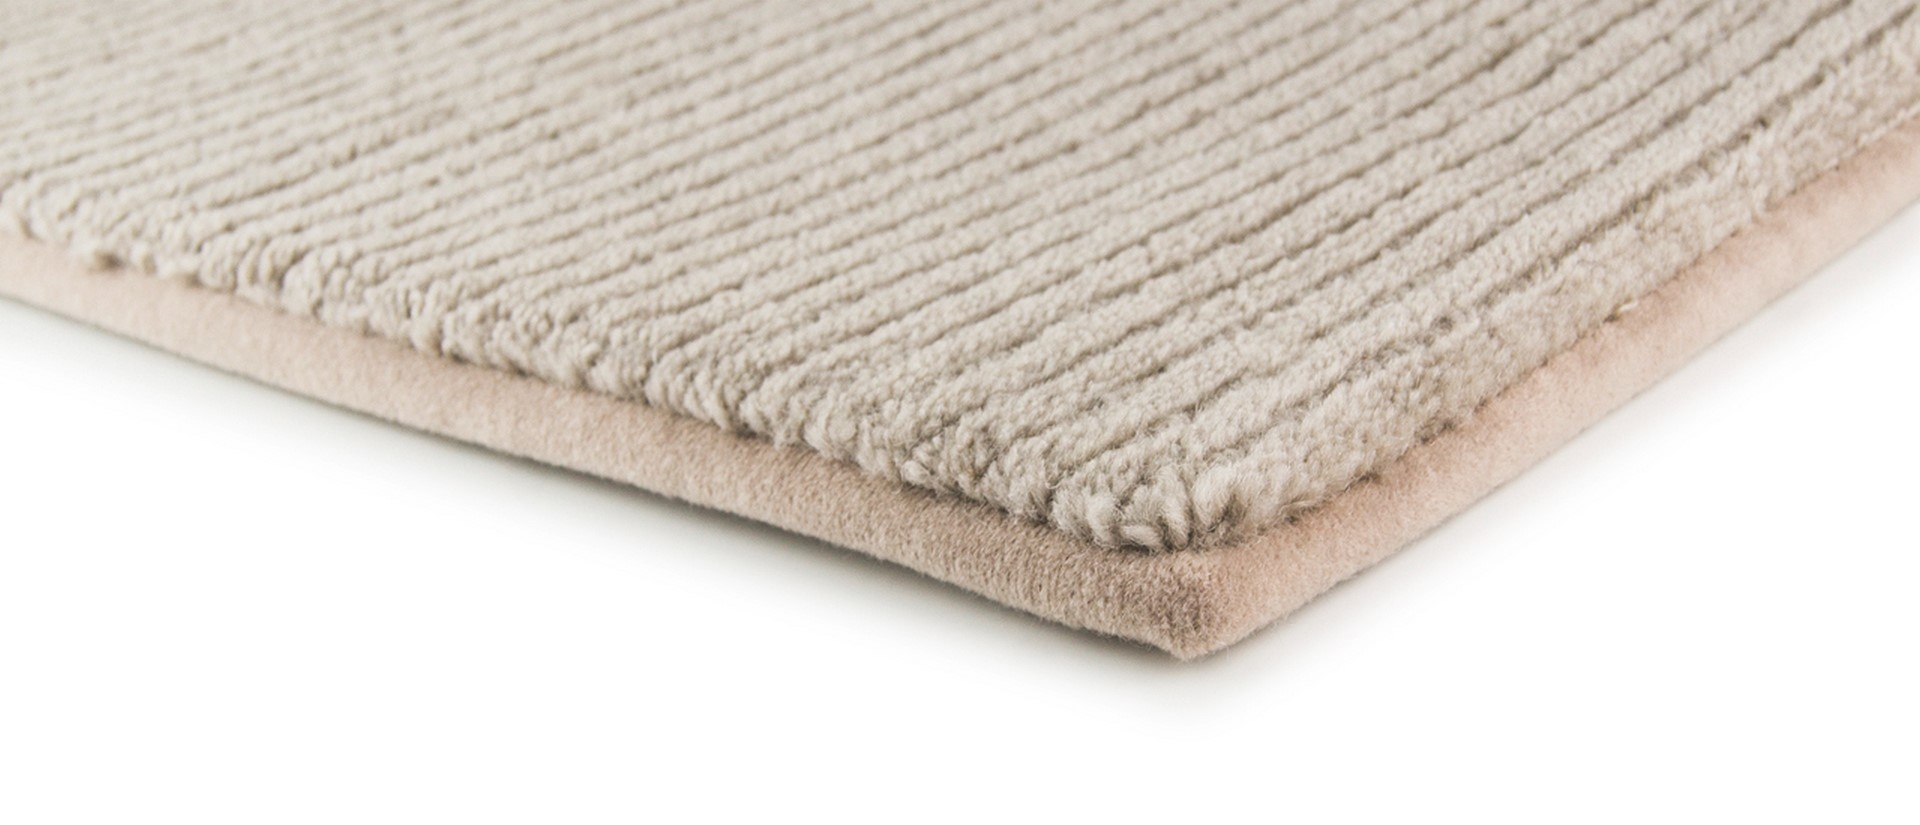 Herringbone Rugs Natural Weave In Design Cream Wool Carpet ITC